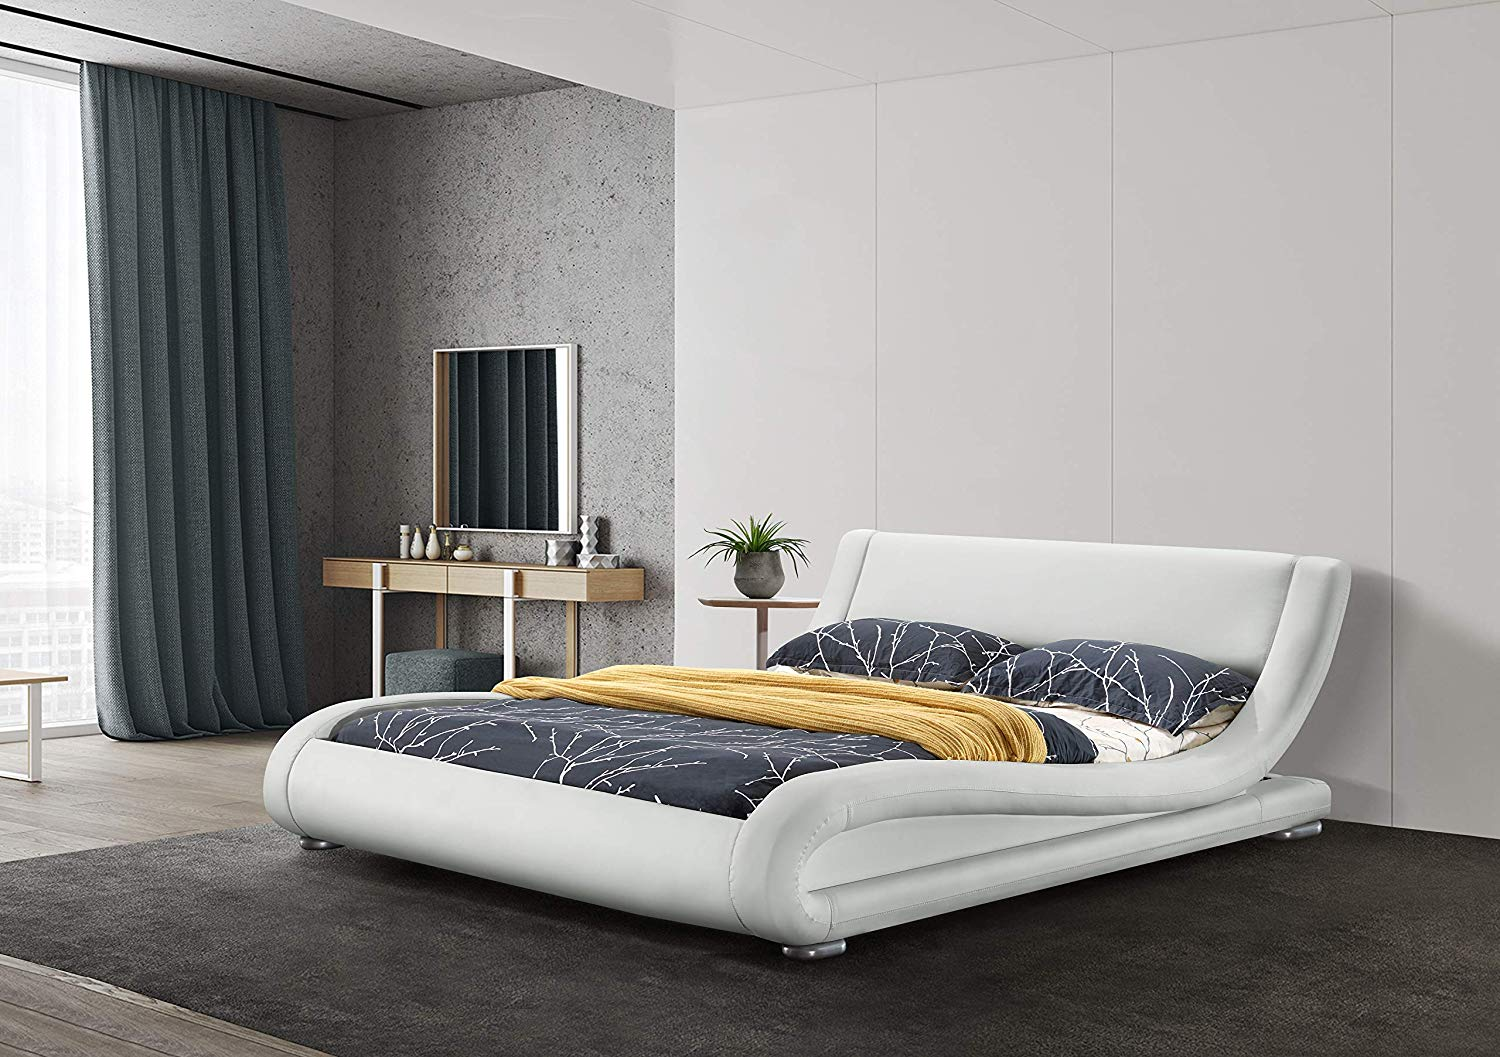 Best Platform Beds You Will Love At First Sight 2019 Free Shipping